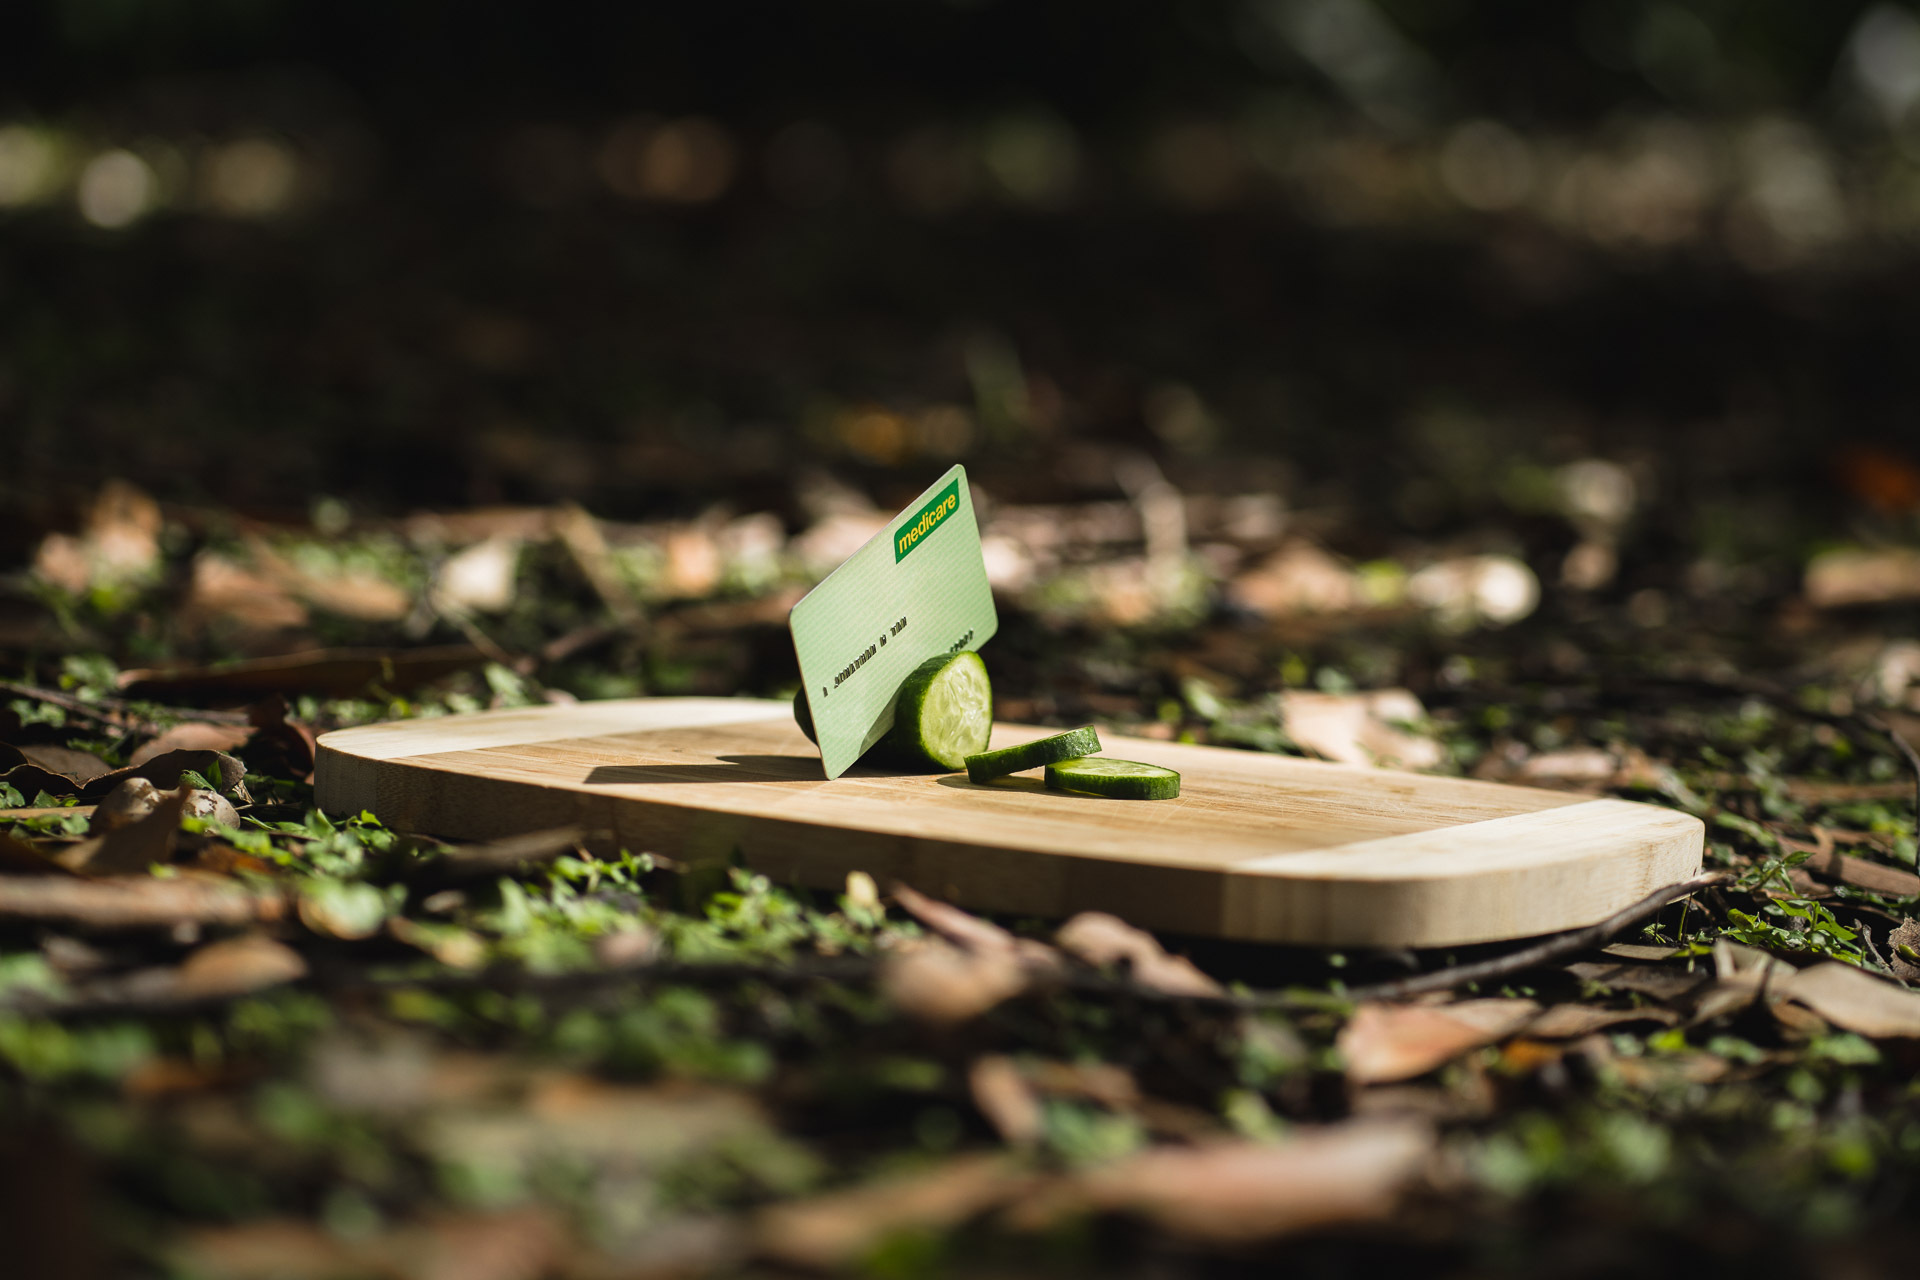 20 Outdoor Hacks We Bet Your Aren't Using, photo by Jono Tan, medicare card cutlery